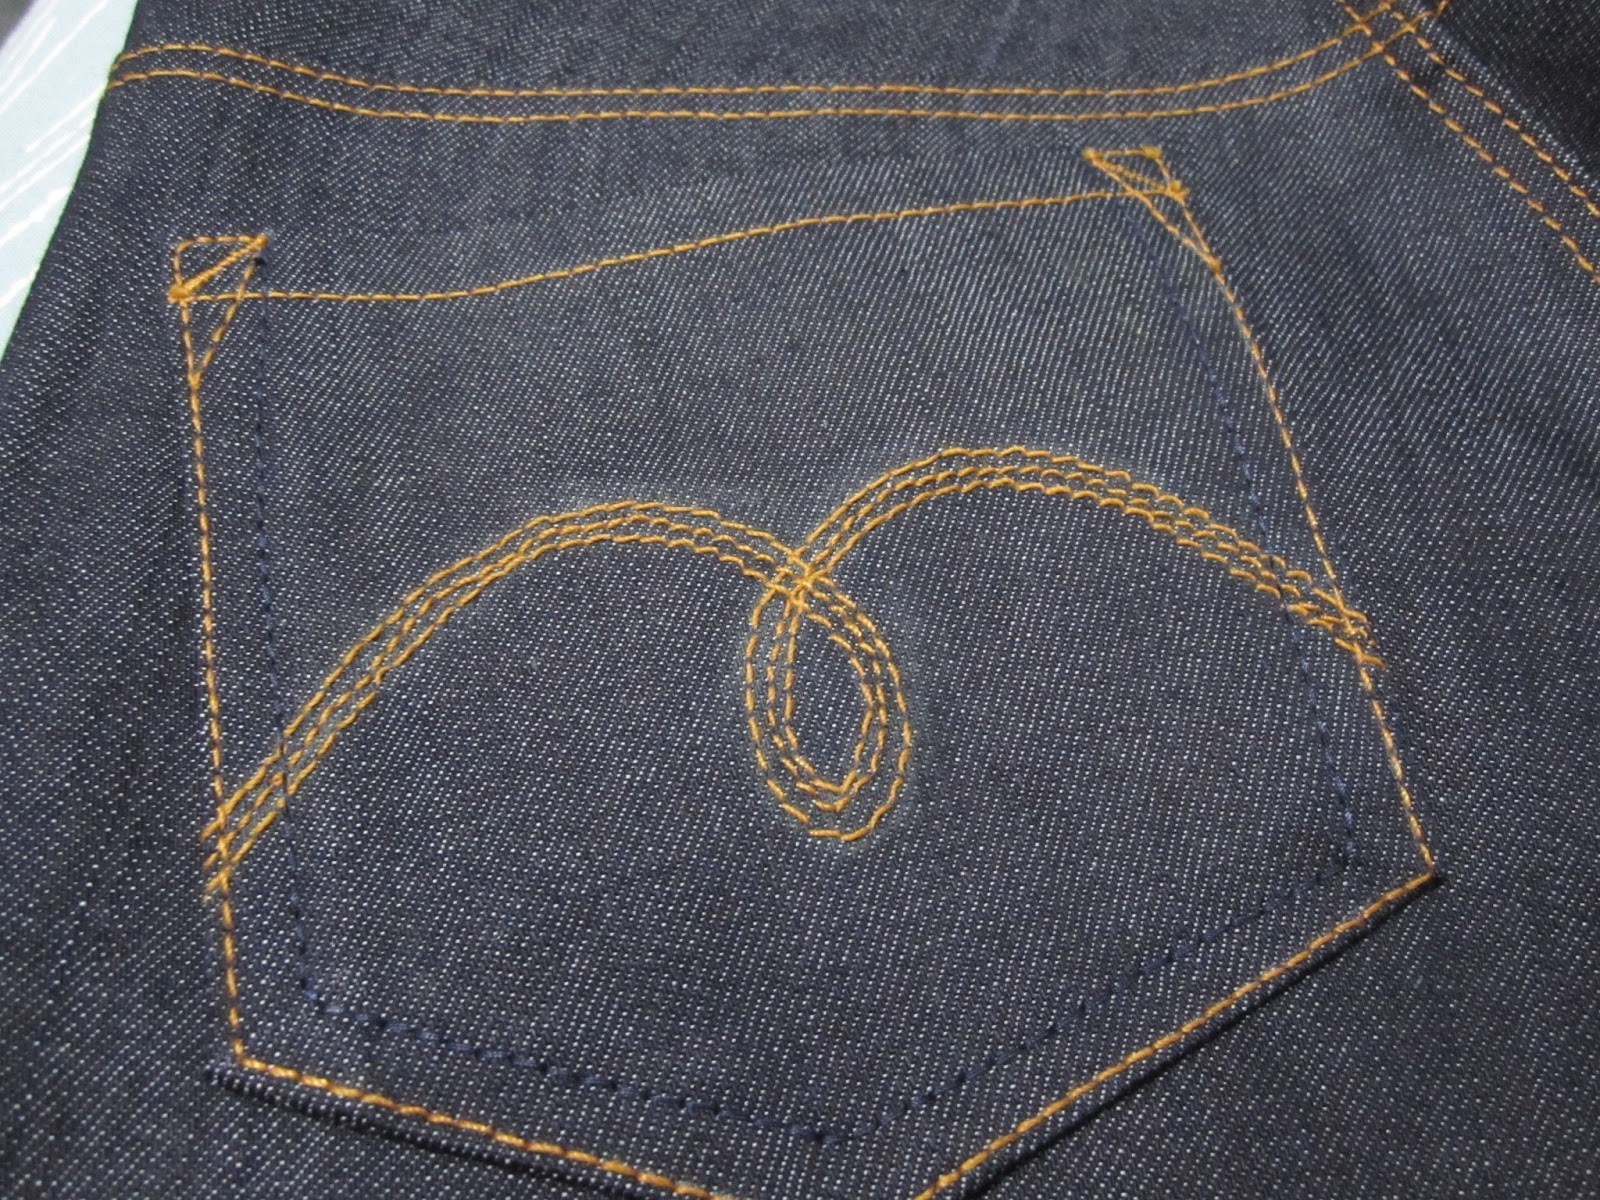 Best jean pocket design tierra este